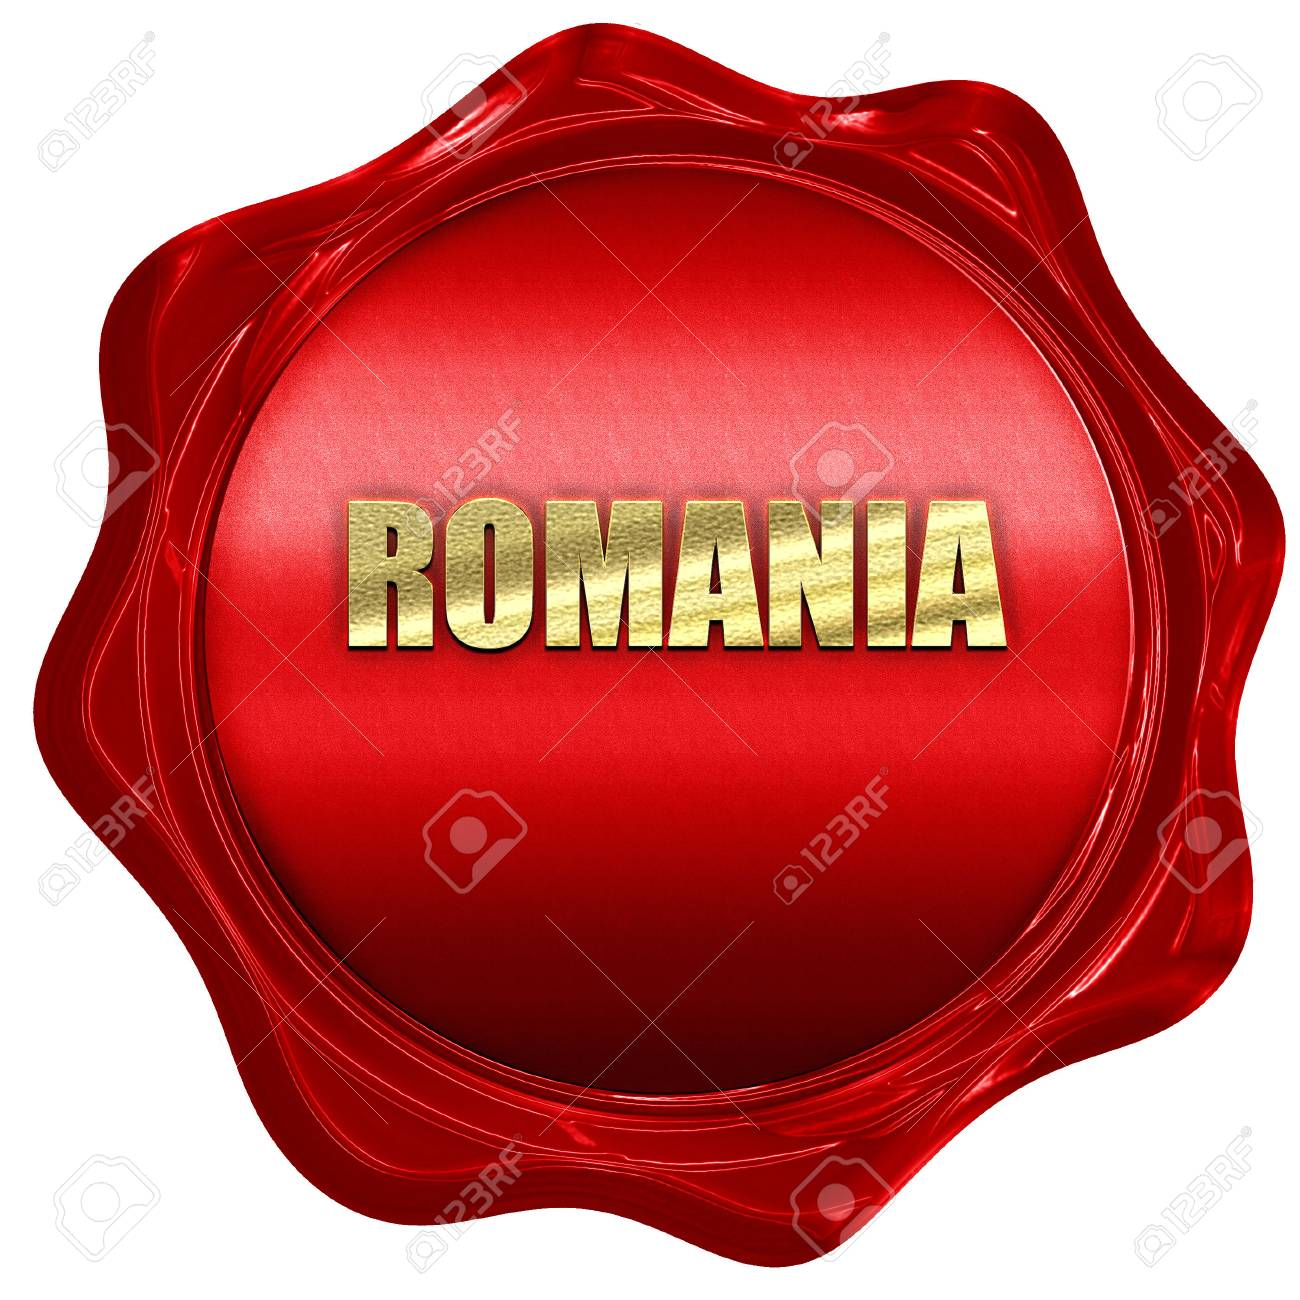 Greetings from romania card with some soft highlights 3d rendering greetings from romania card with some soft highlights 3d rendering a red wax seal m4hsunfo